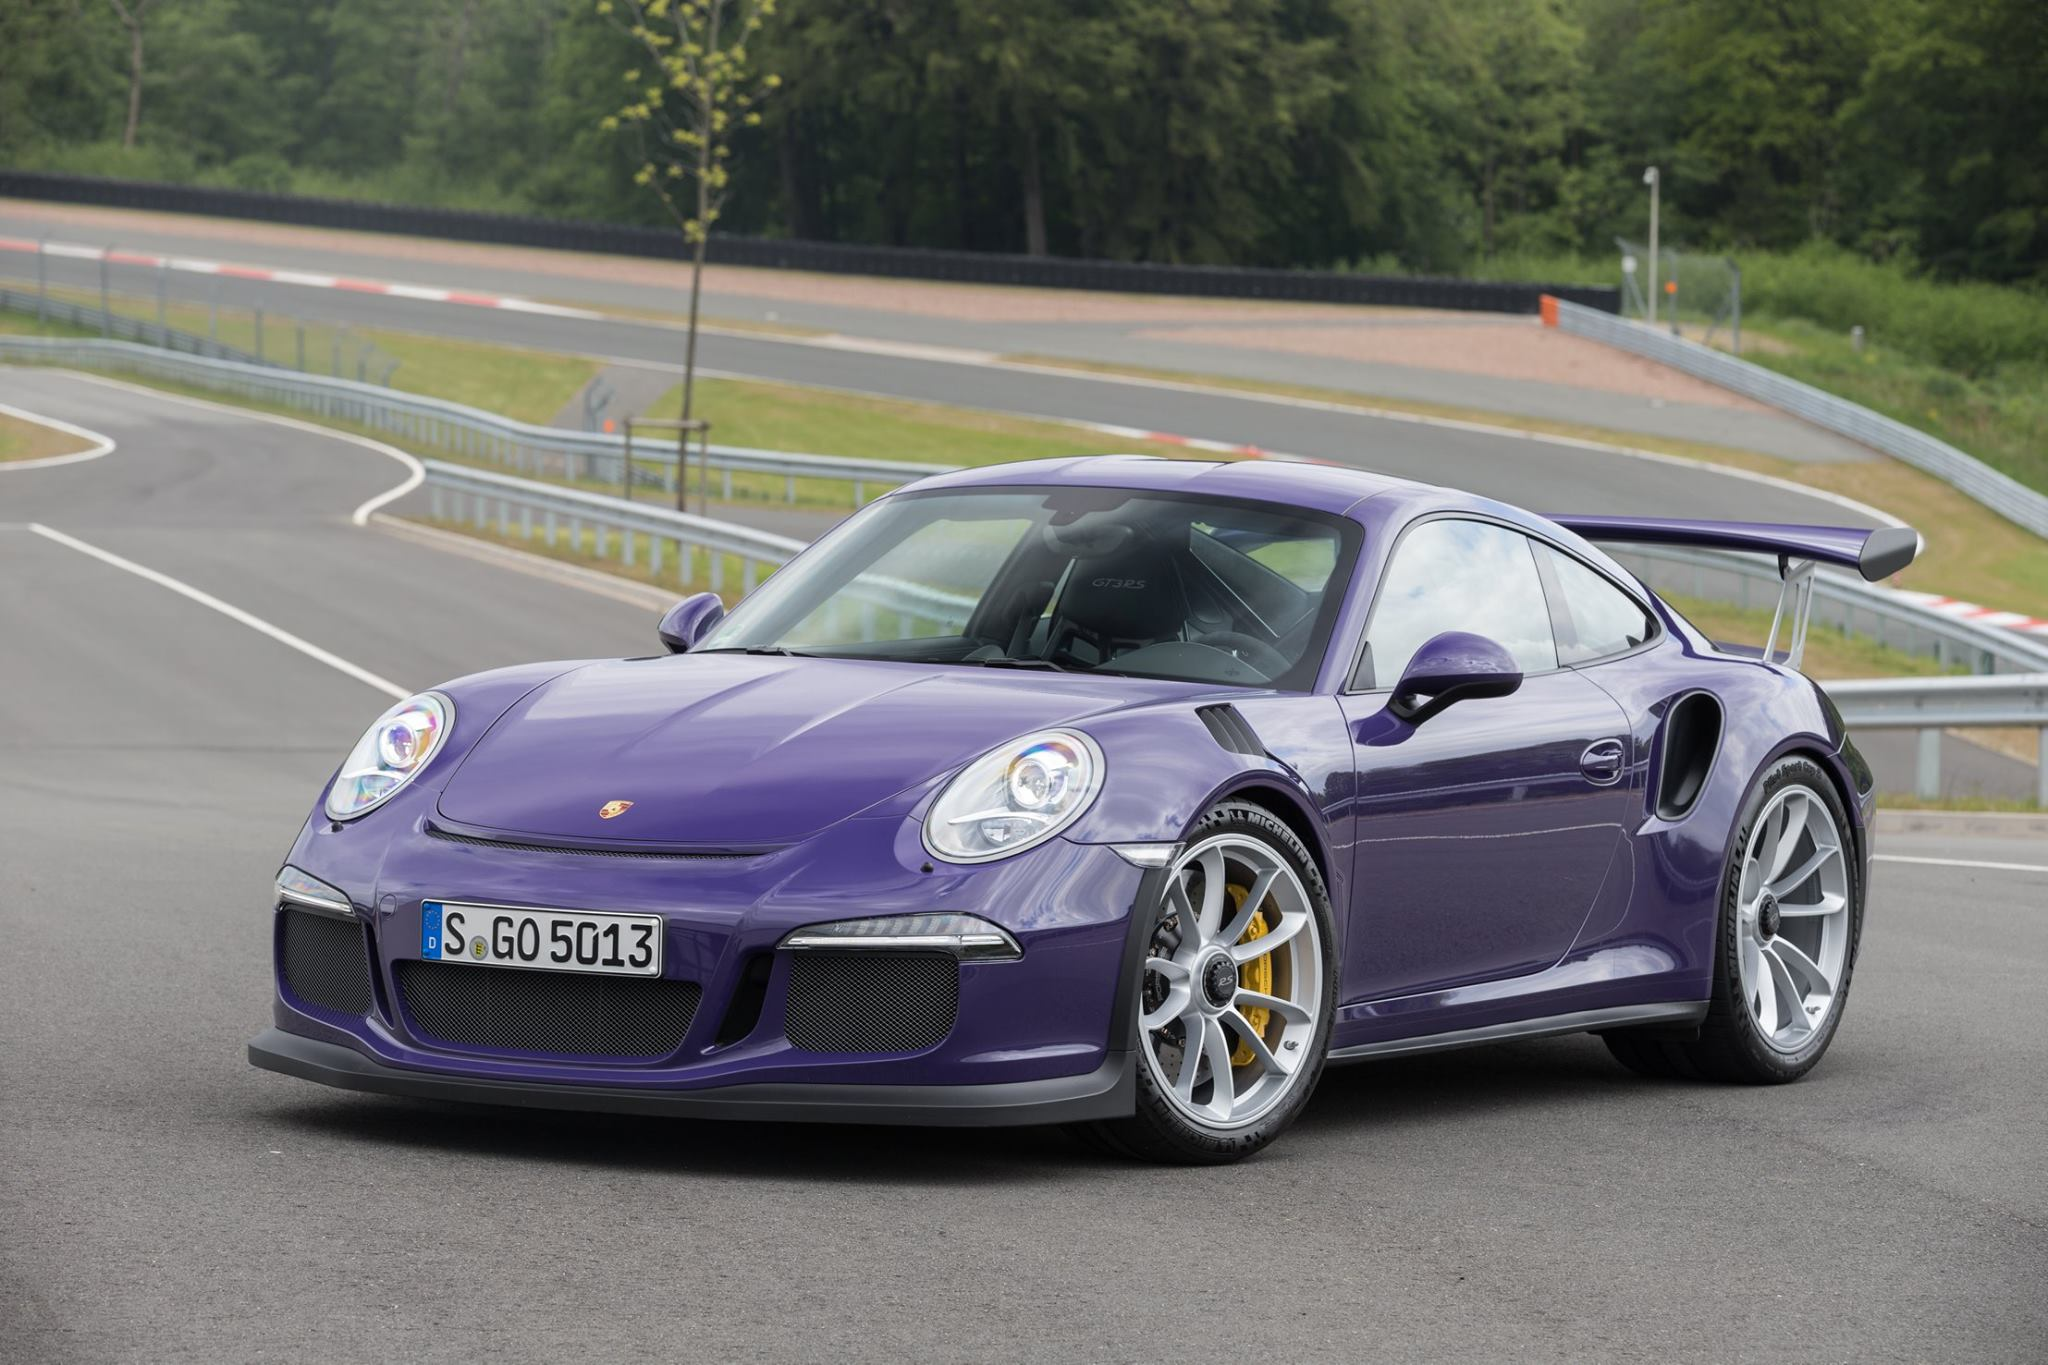 Gorgeous Ultraviolet Porsche 911 Gt3 Rs Gtspirit